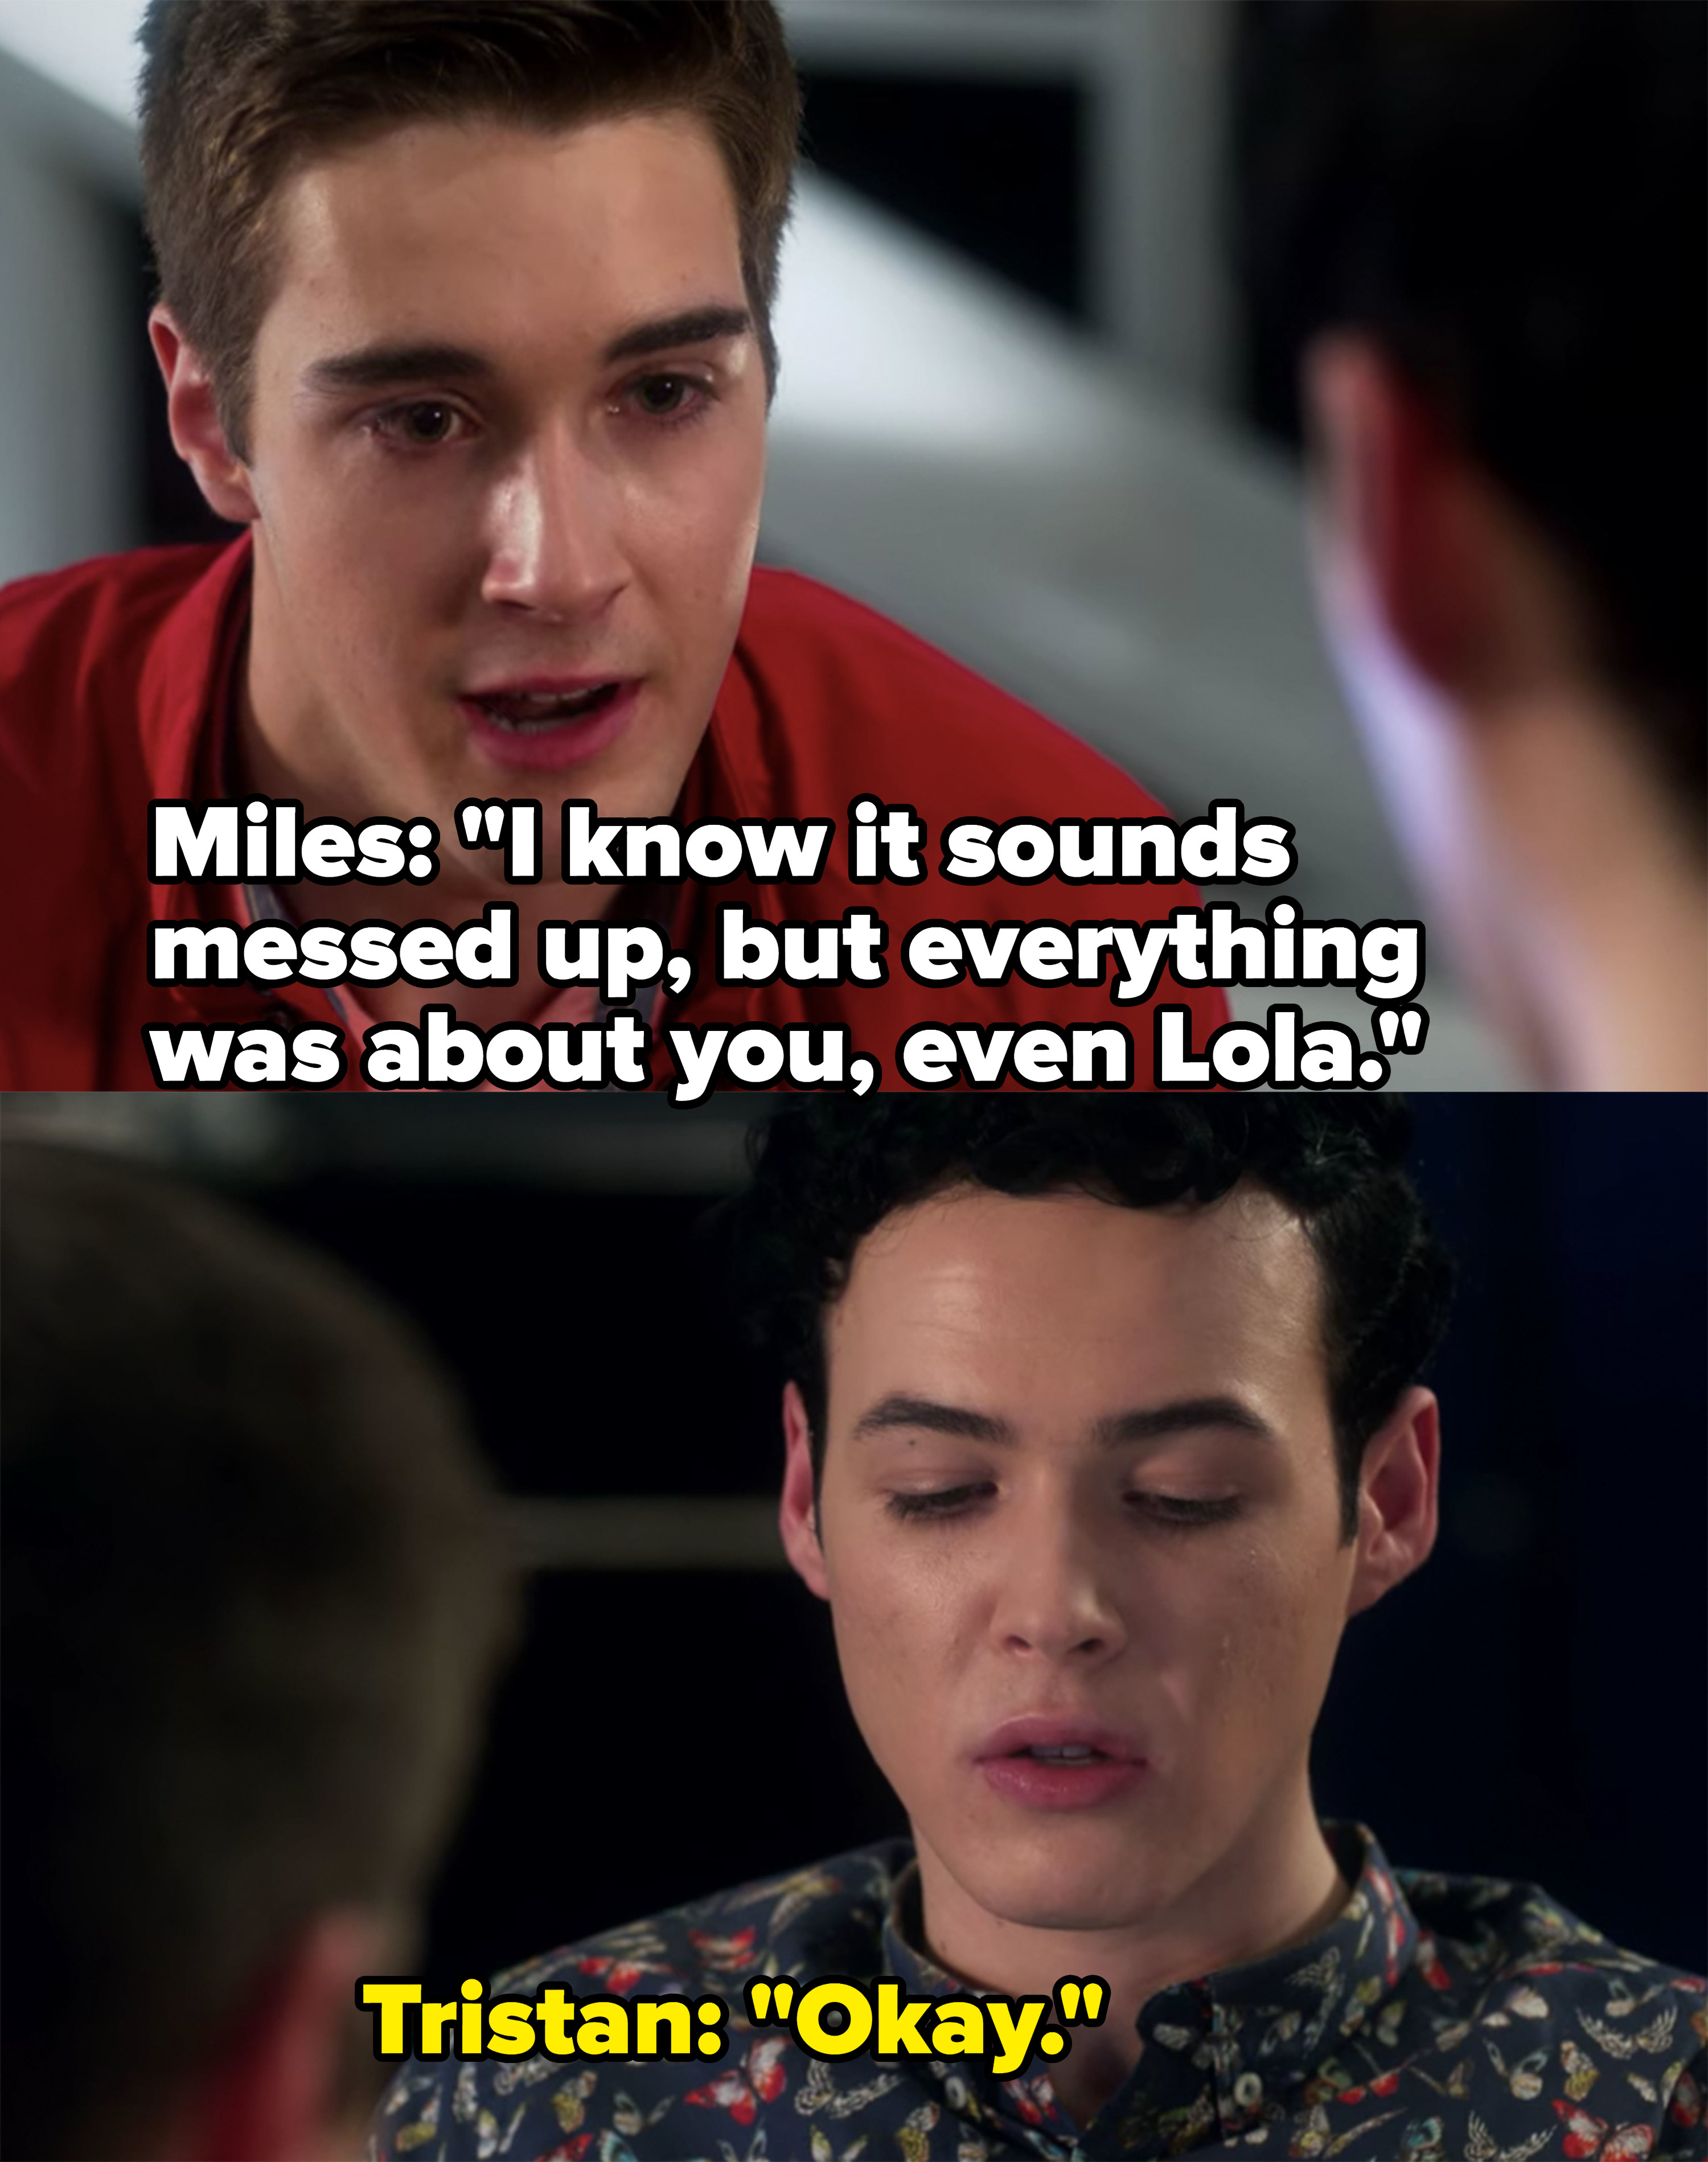 Miles says that even though he cheated, it was really all about Tristan